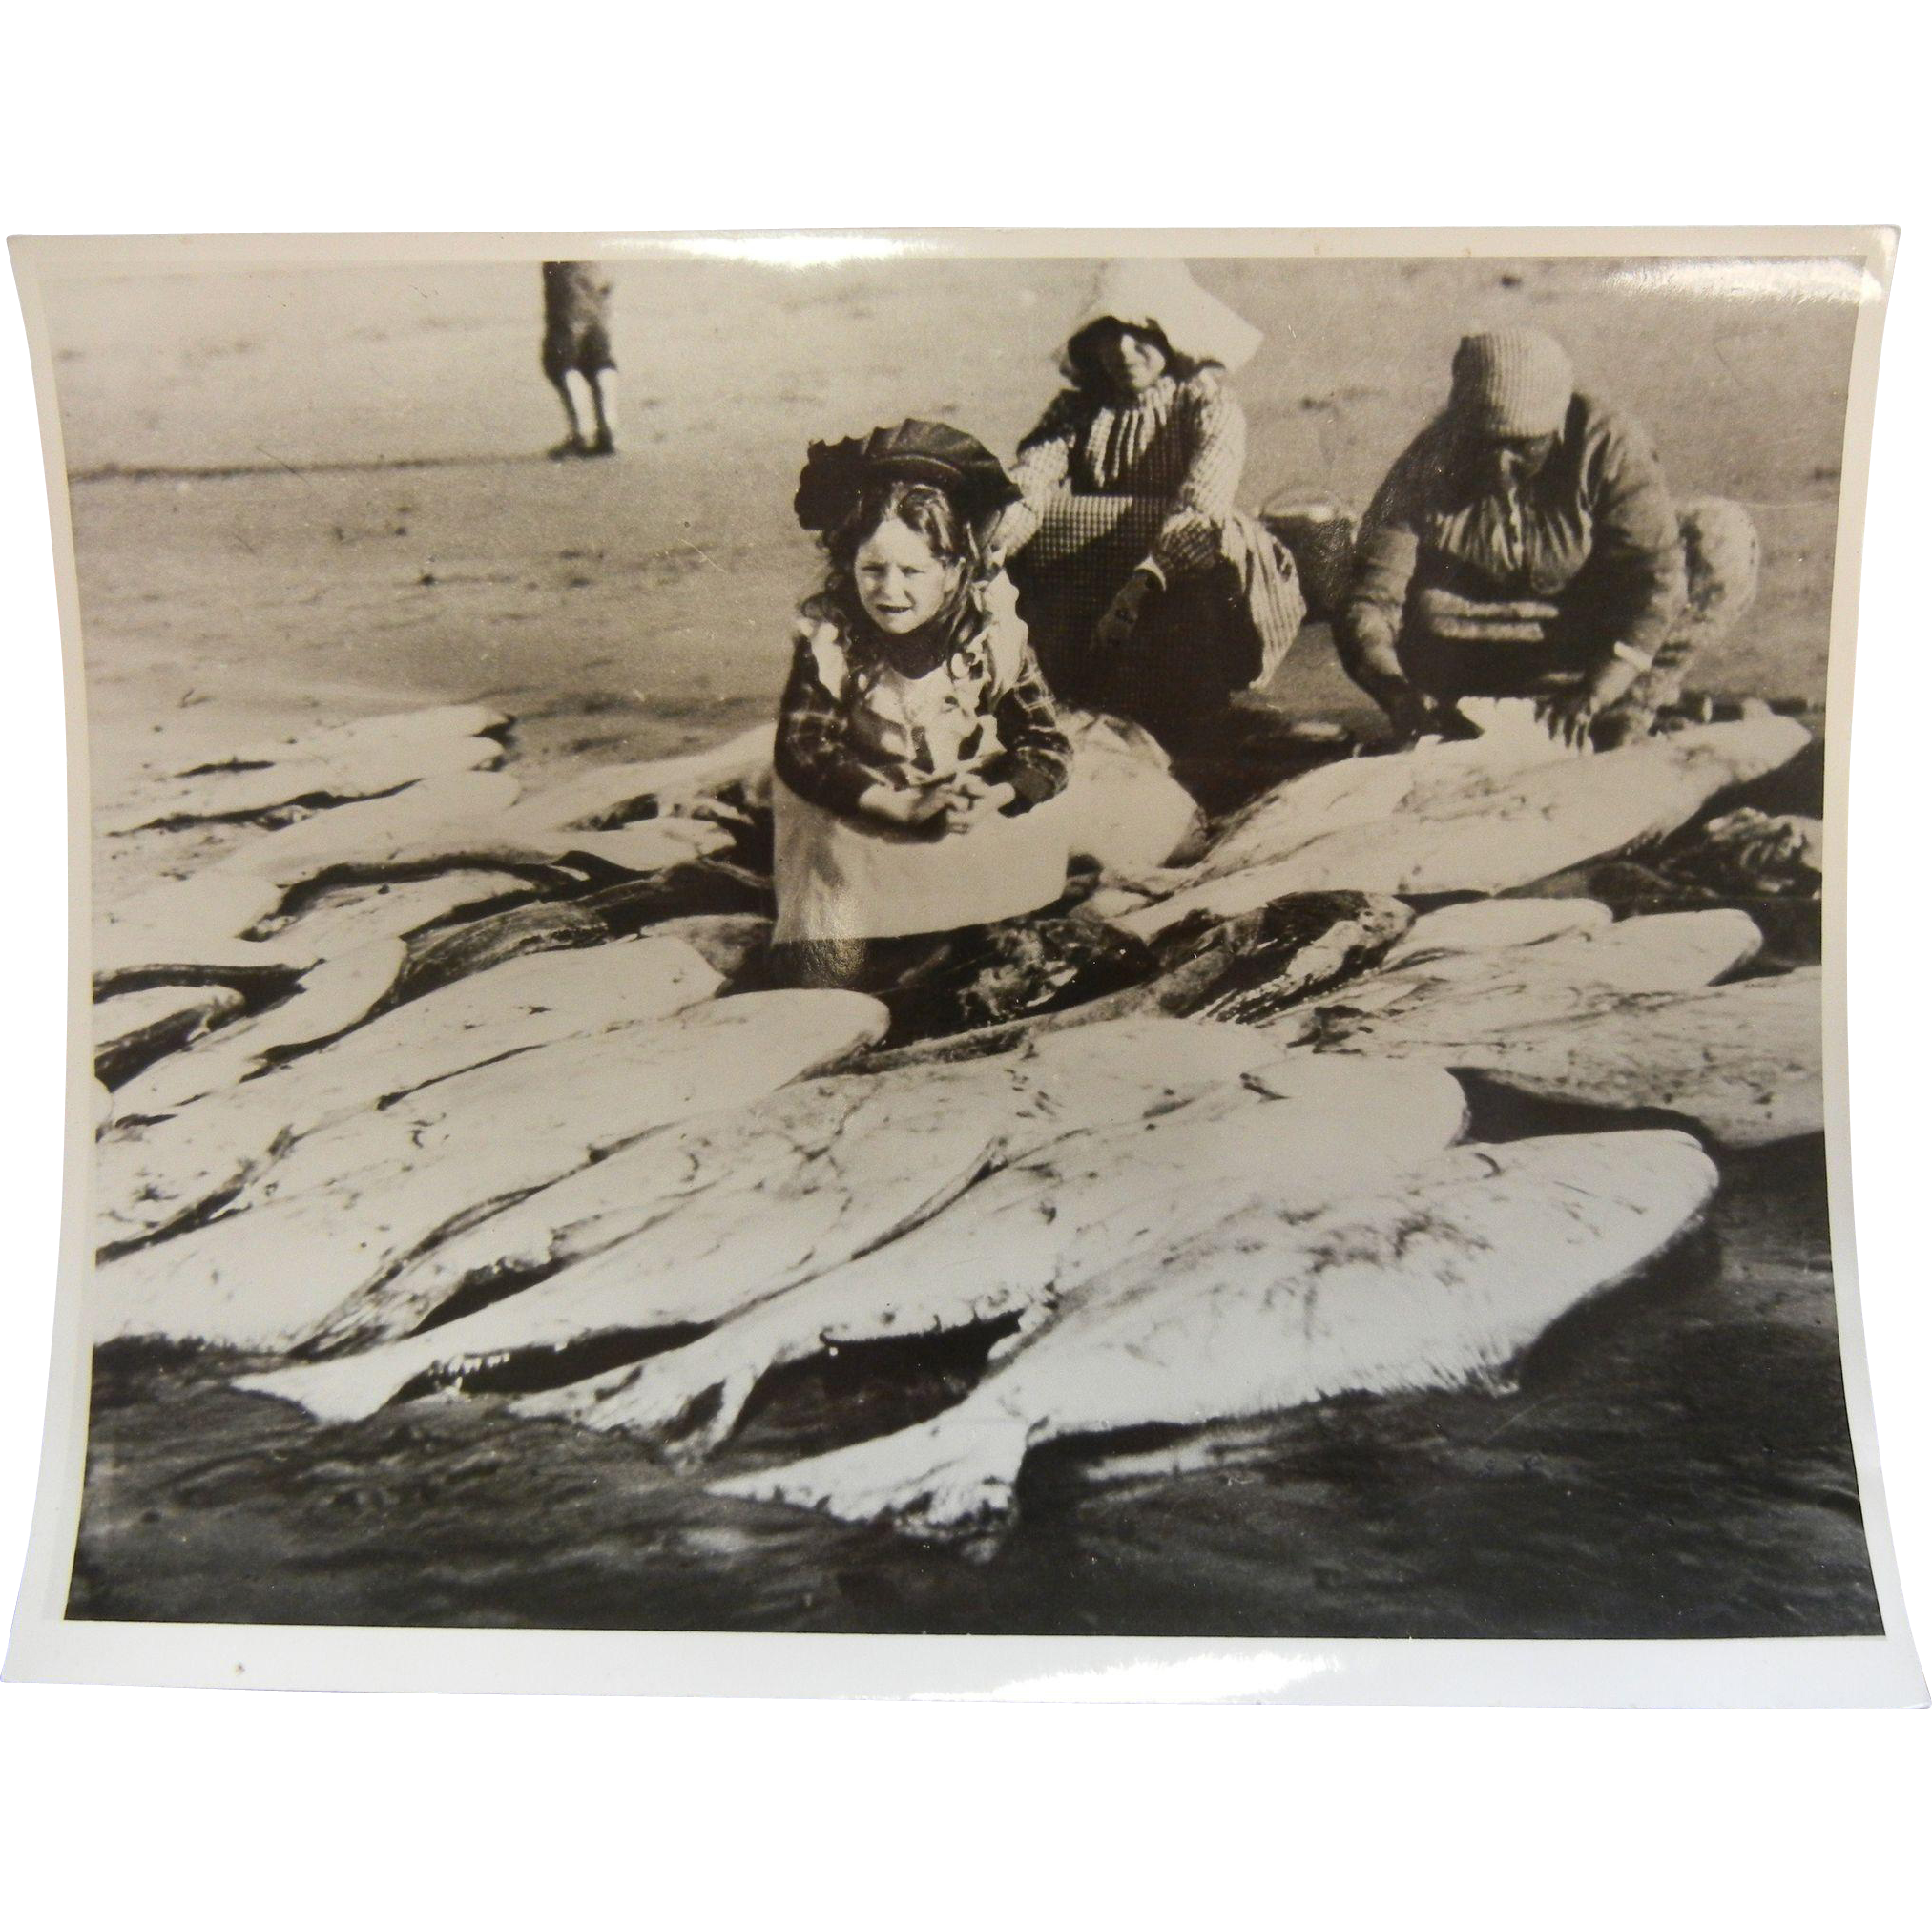 Original B&W Northwest Coast Photograph - Little Girl w/ Fish